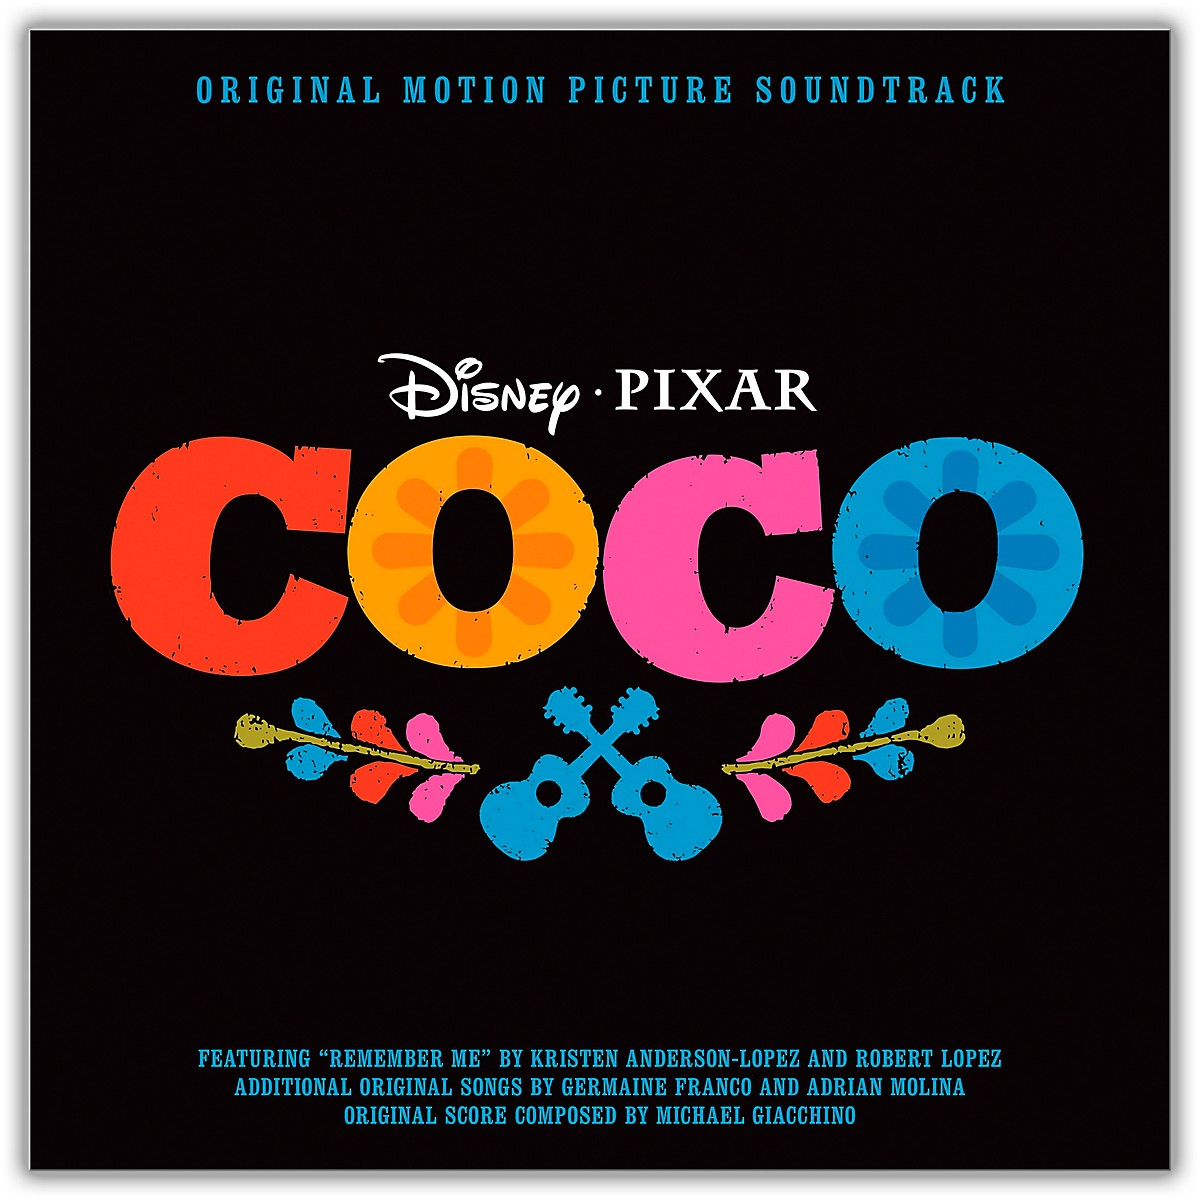 Universal Music Group Various Artists - Coco (Original Motion Picture Soundtrack) CD